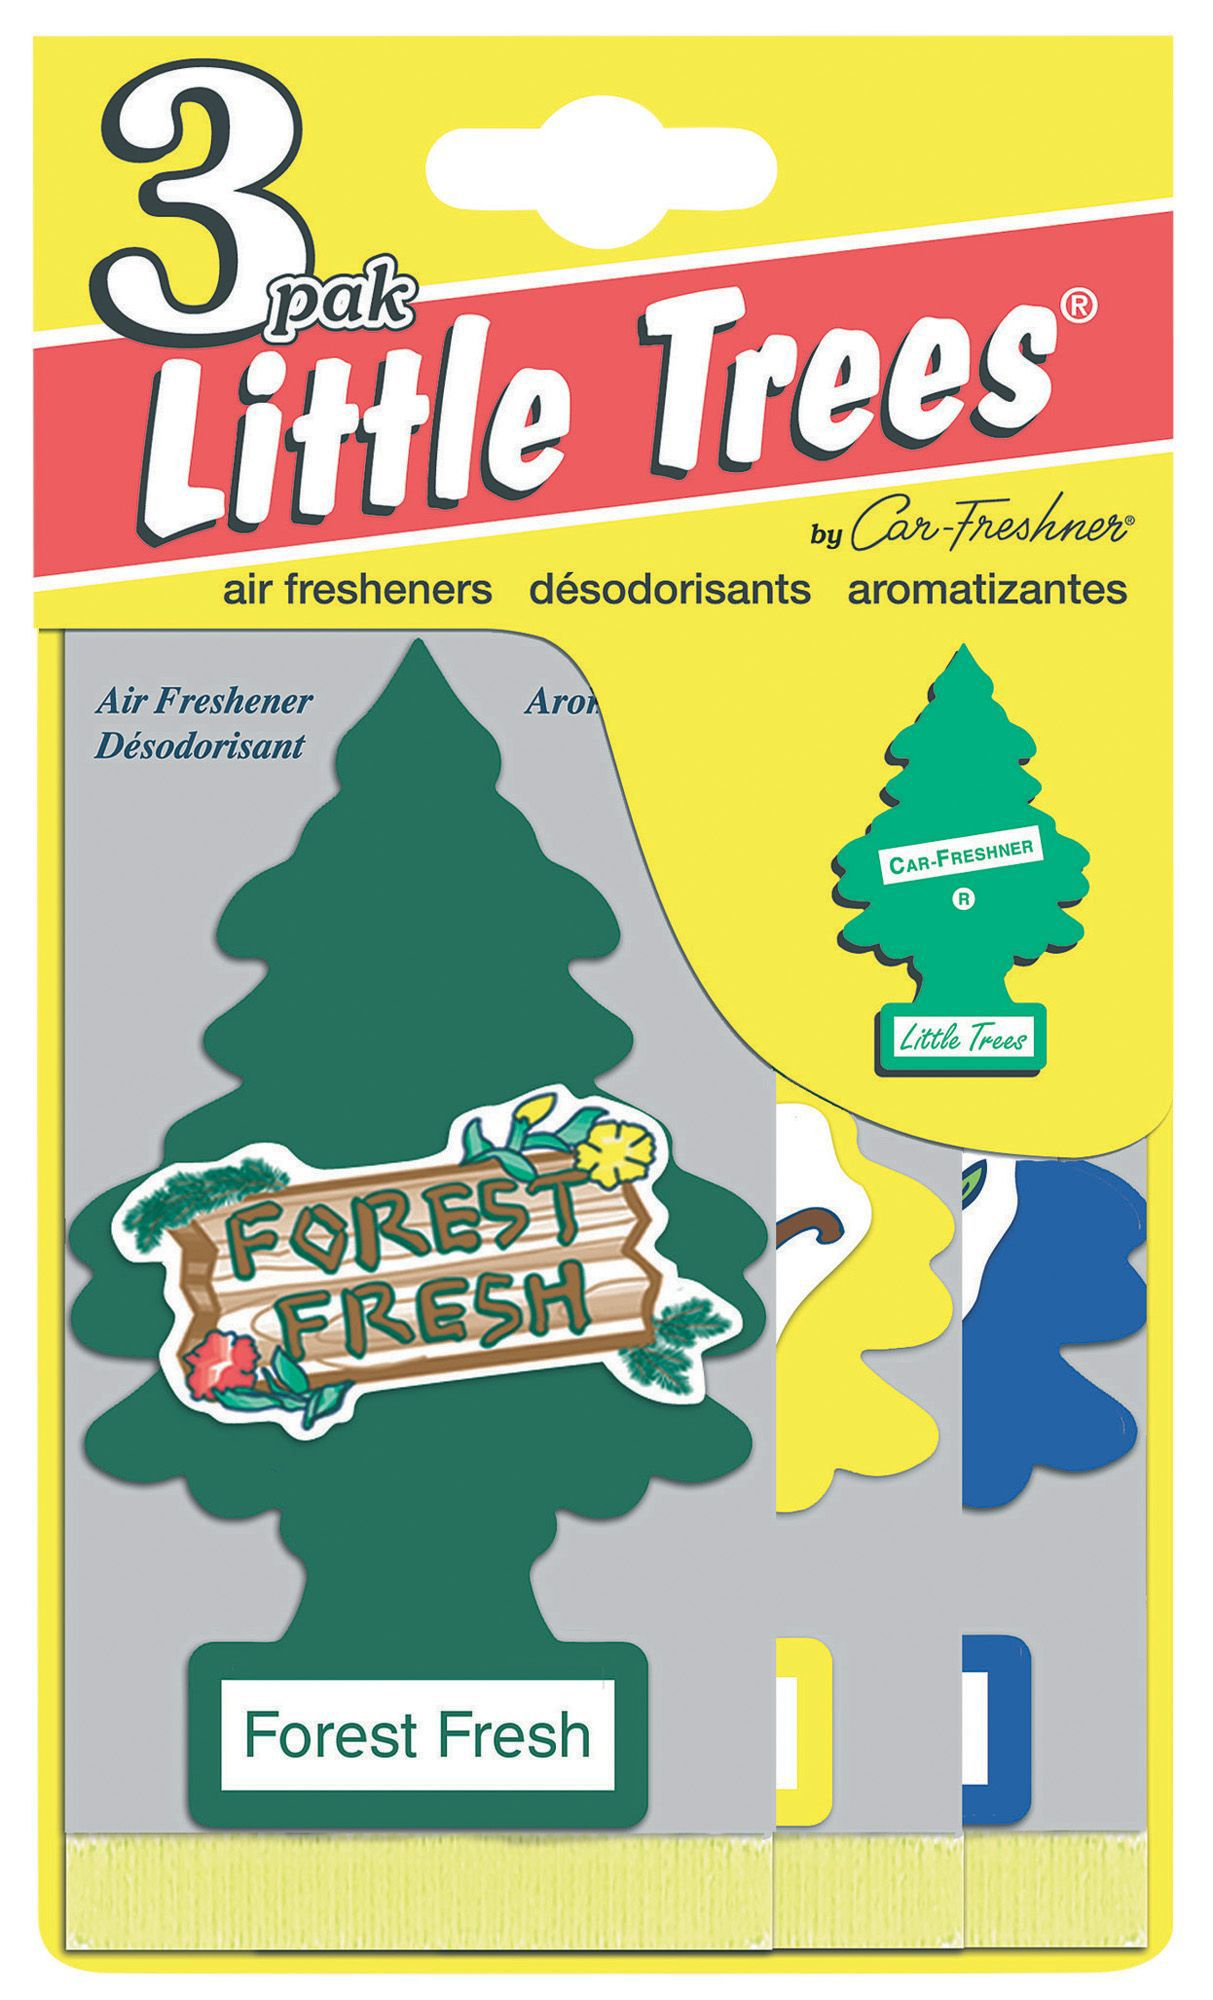 Vacs And Videos >> Little Trees Vanilla Aroma Air Freshener, Pack of 3 | Departments | DIY at B&Q